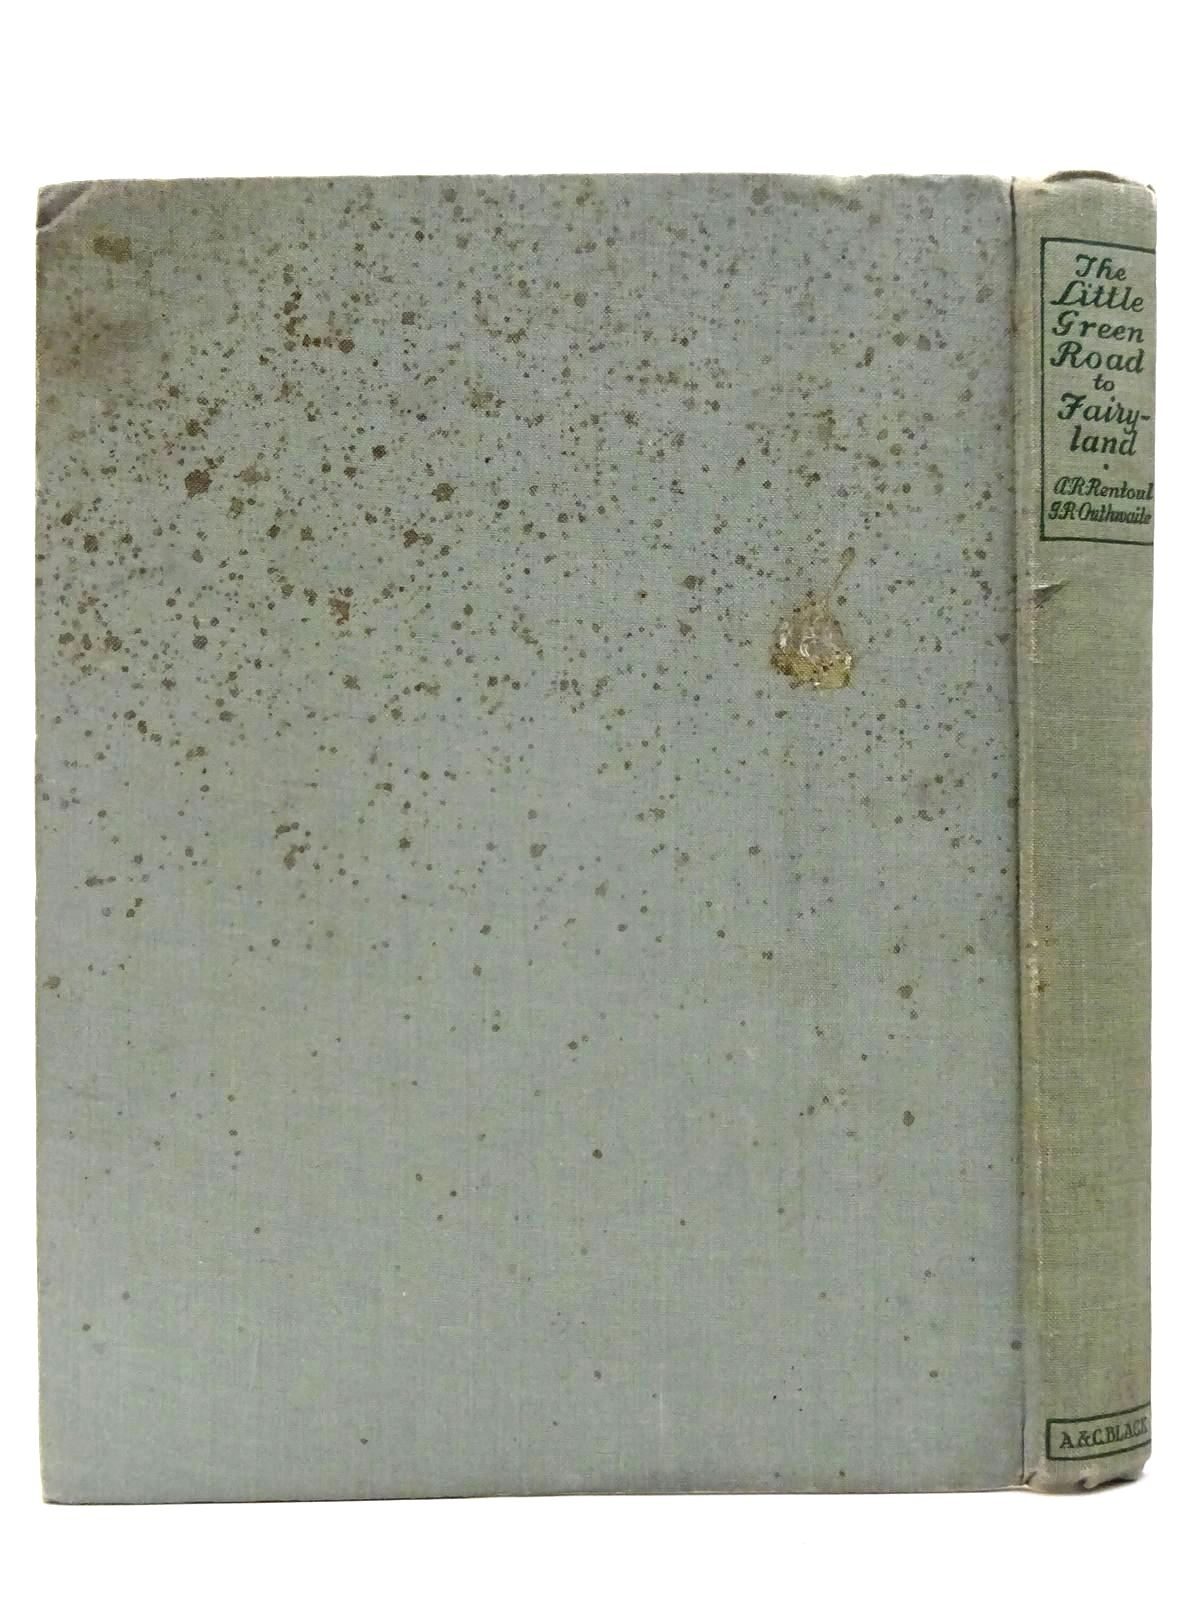 Photo of THE LITTLE GREEN ROAD TO FAIRYLAND written by Rentoul, Annie R. illustrated by Outhwaite, Ida Rentoul published by A. & C. Black Ltd. (STOCK CODE: 2130264)  for sale by Stella & Rose's Books